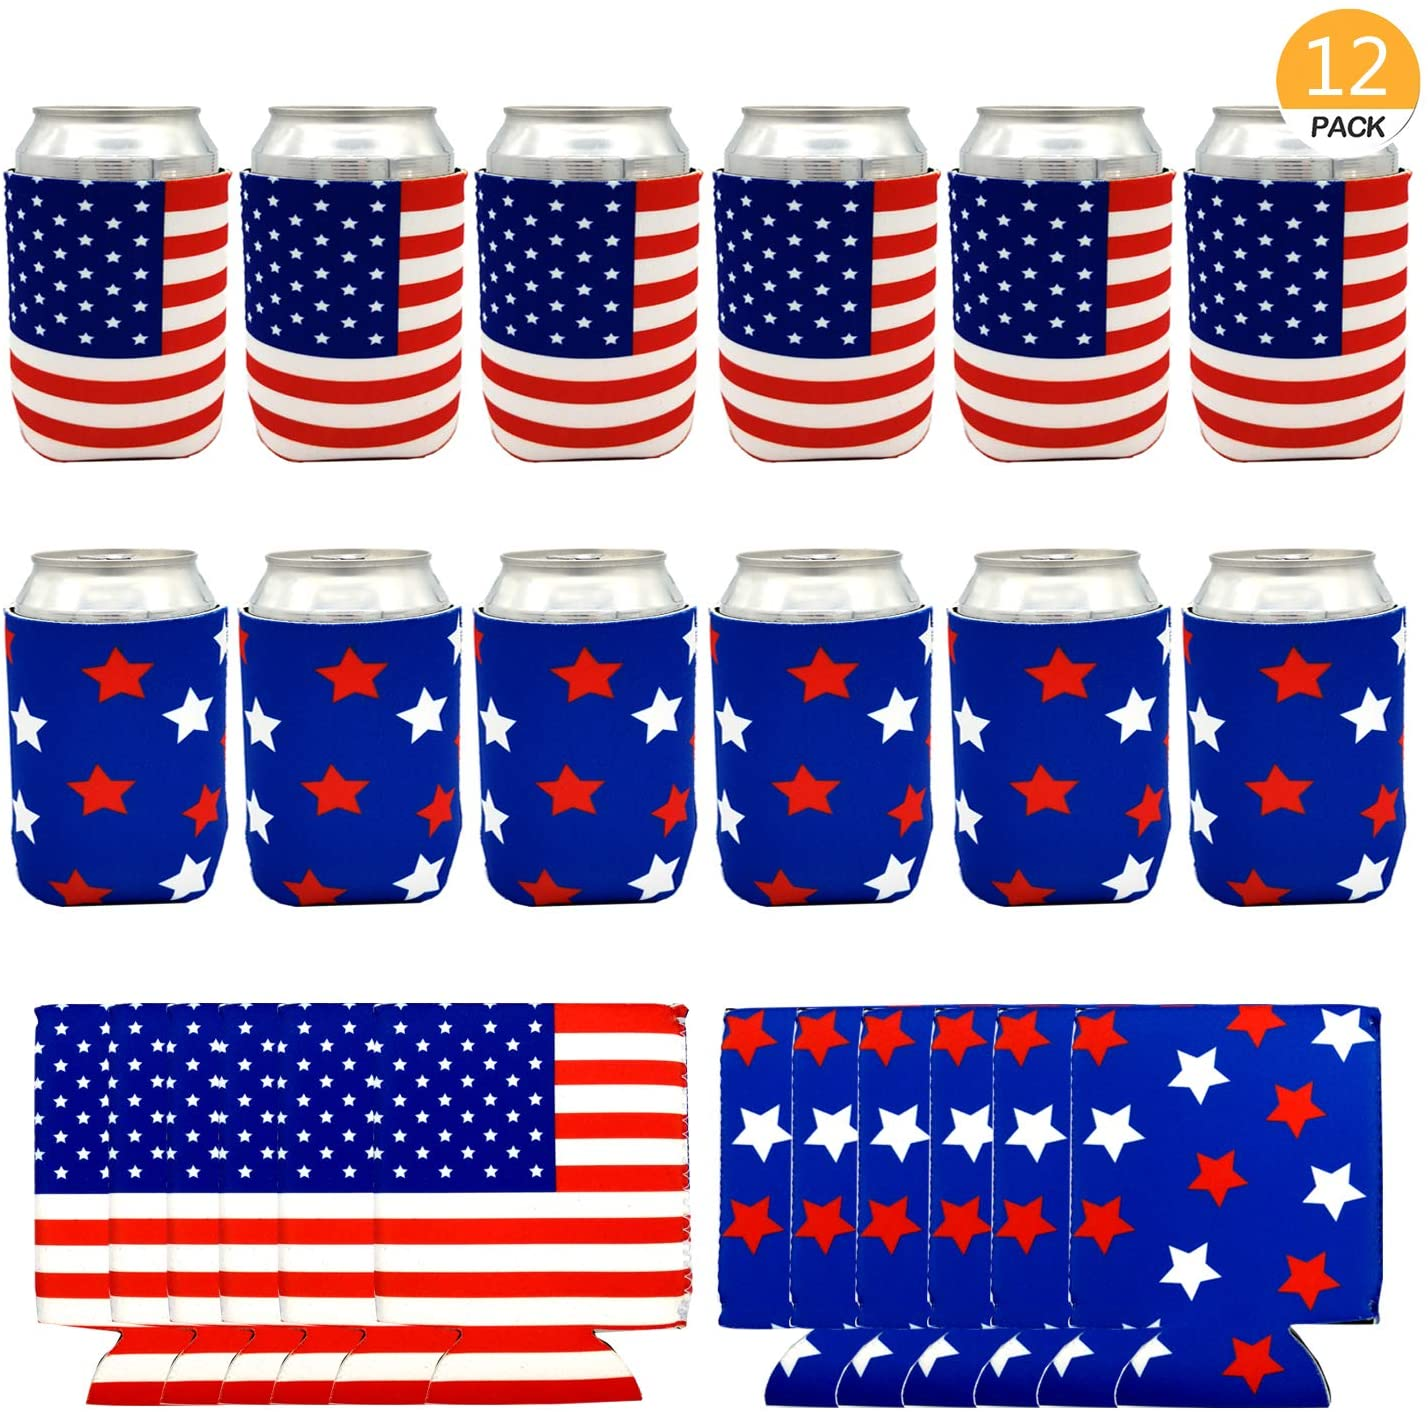 Onene 12 pieces American Flag Can Cooler Sleeves, Neoprene Beer Coolies for Cans and Bottles, Collapsible Drink Cooler Sleeves, Perfect Party Supplies for Insulating,BBQ,4th Of July,Gifts,Events